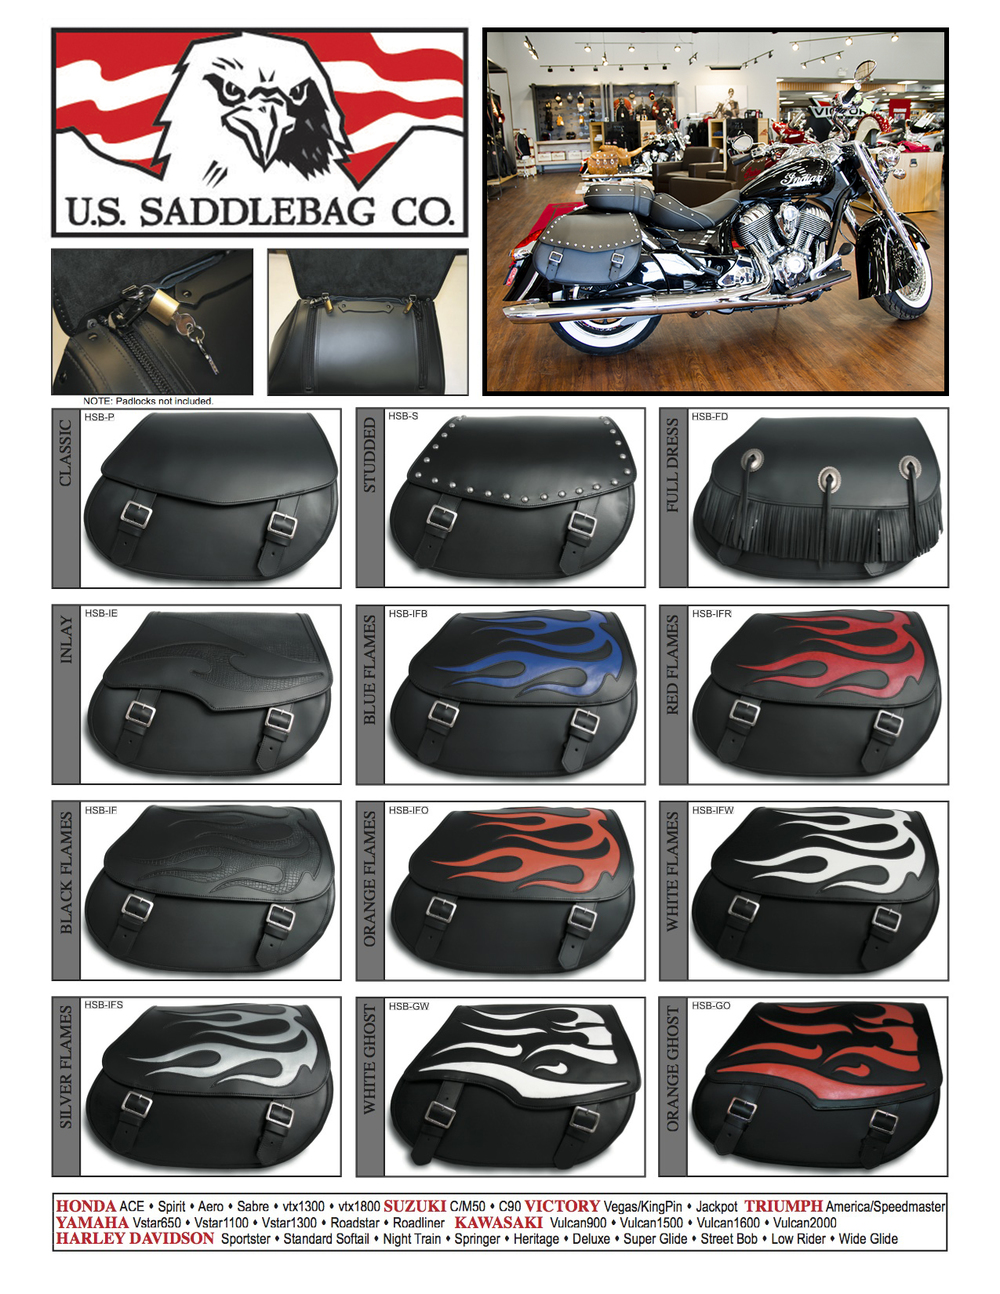 leather-saddlebags-layout.jpg